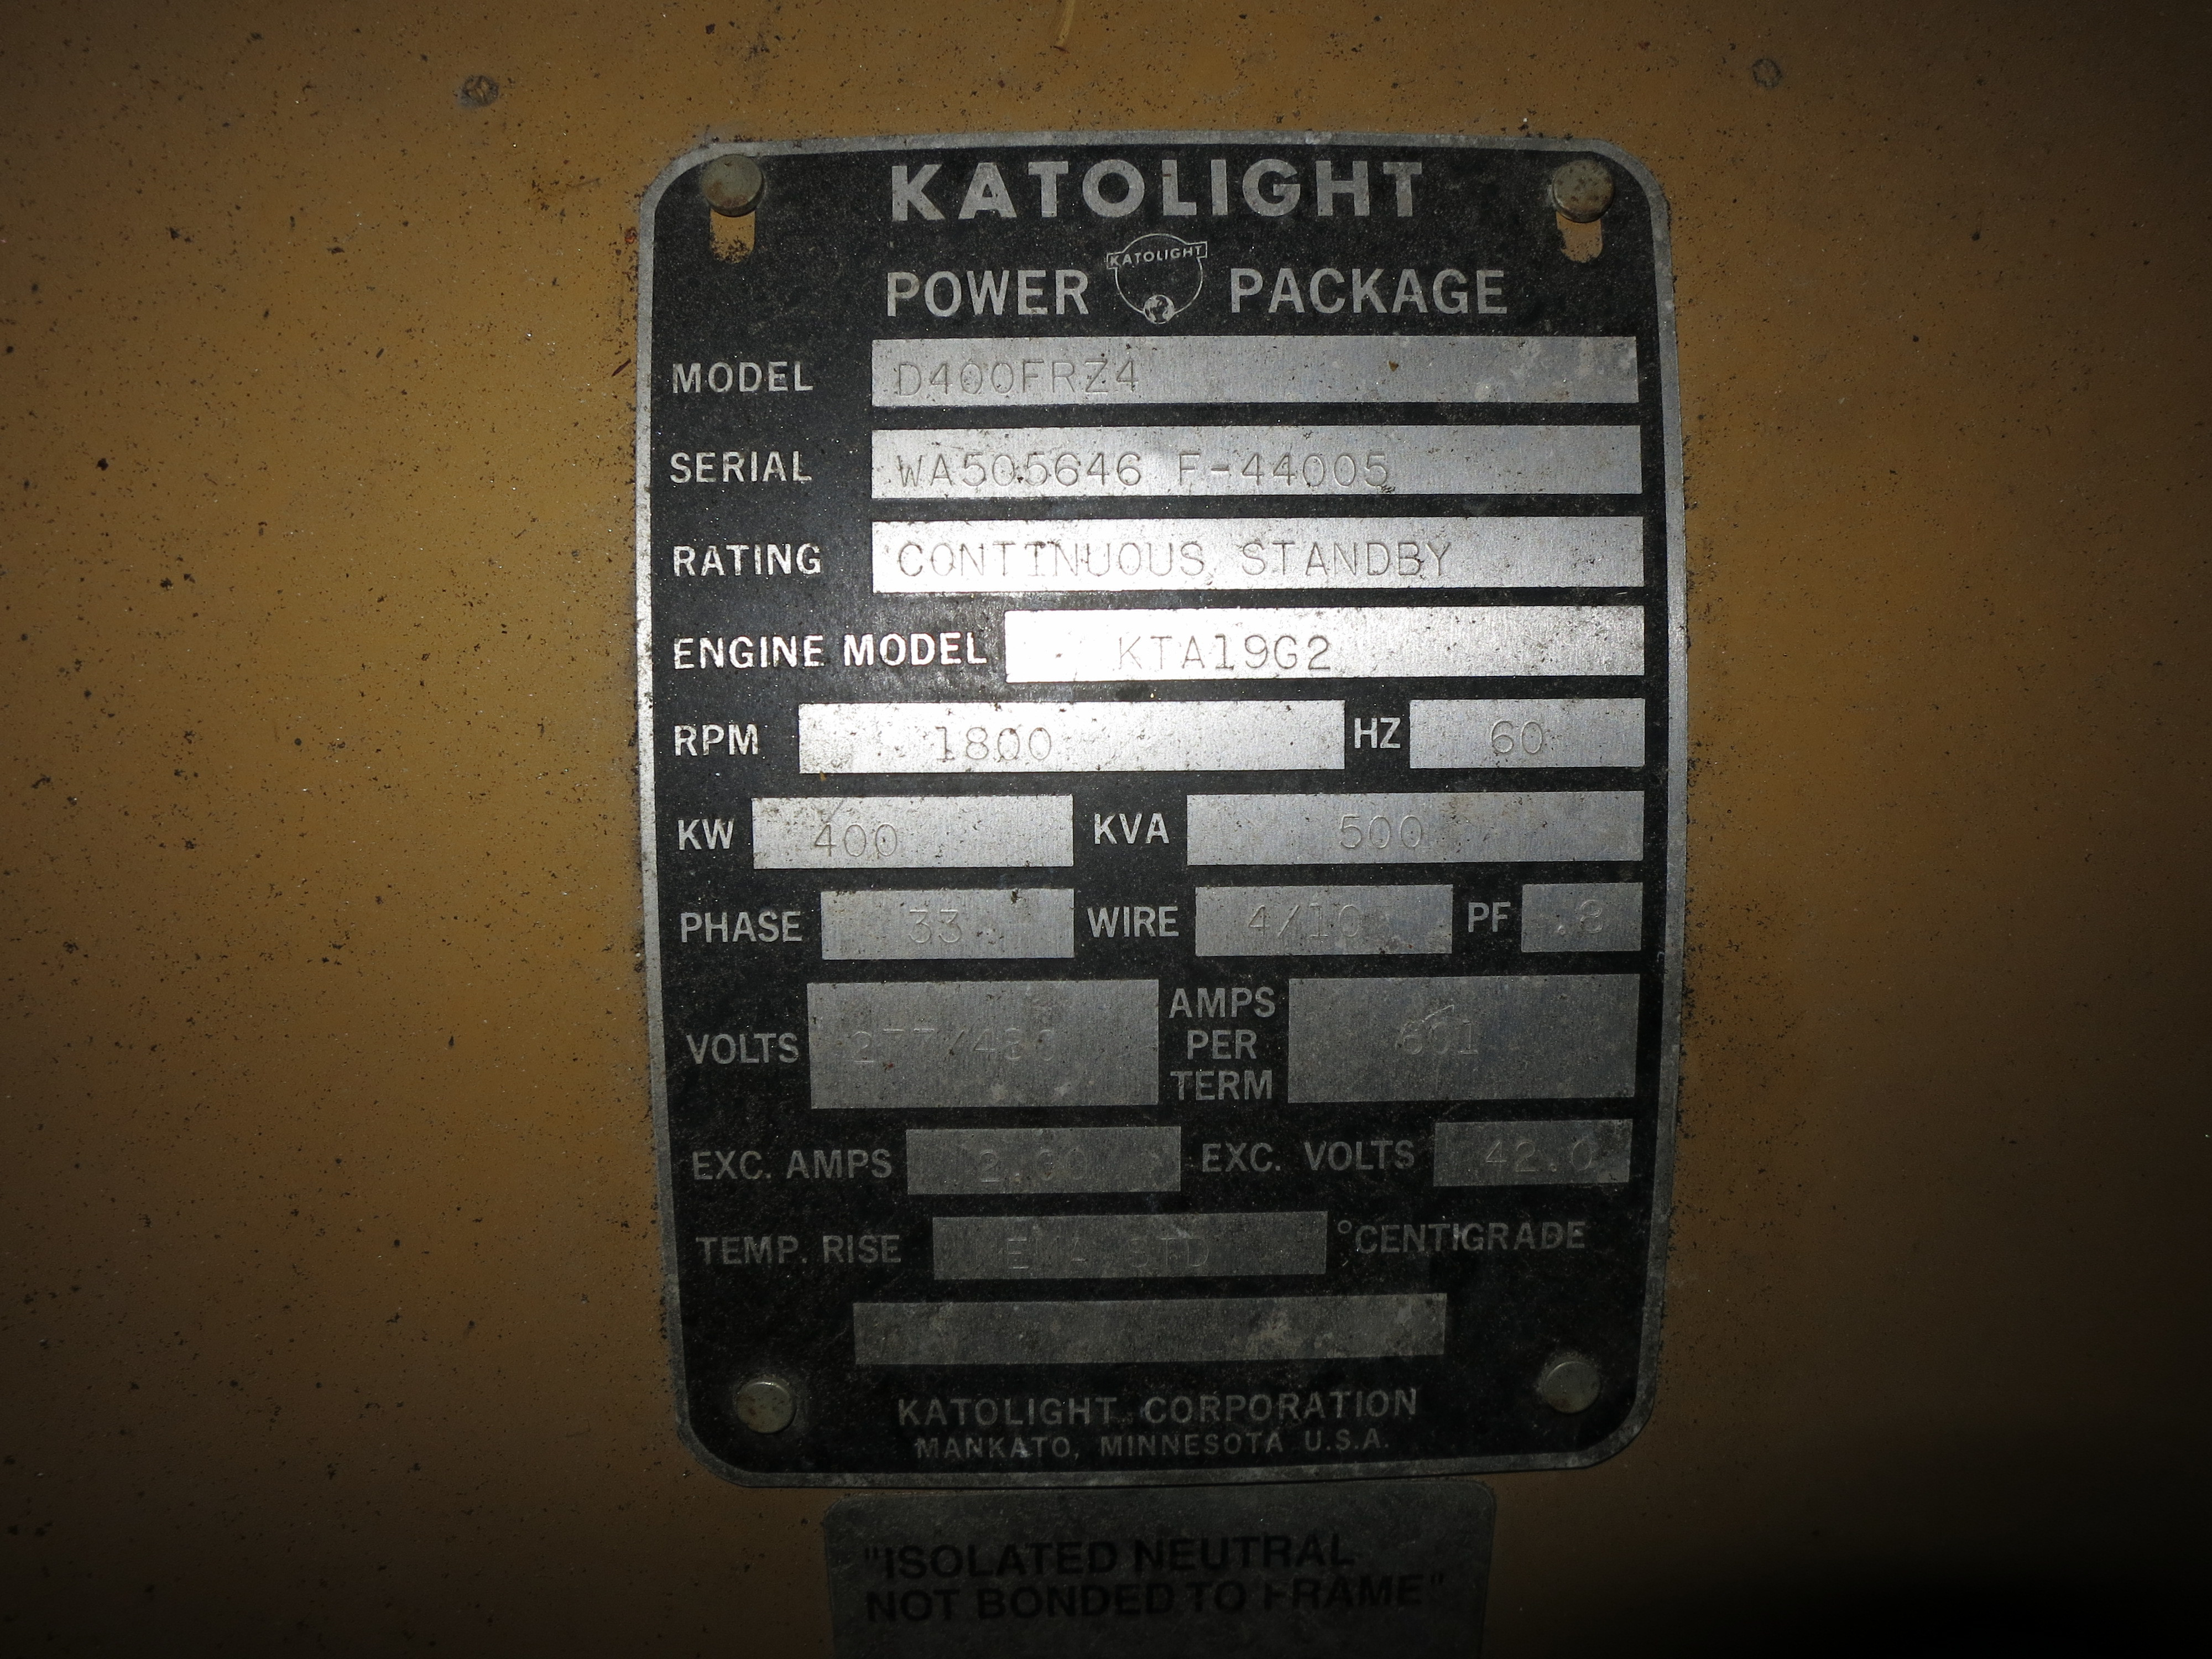 Katolight Generator Parts Manual 05 Sunfire A C Compressor Wiring Diagram Image Not Found Or Type Unknown